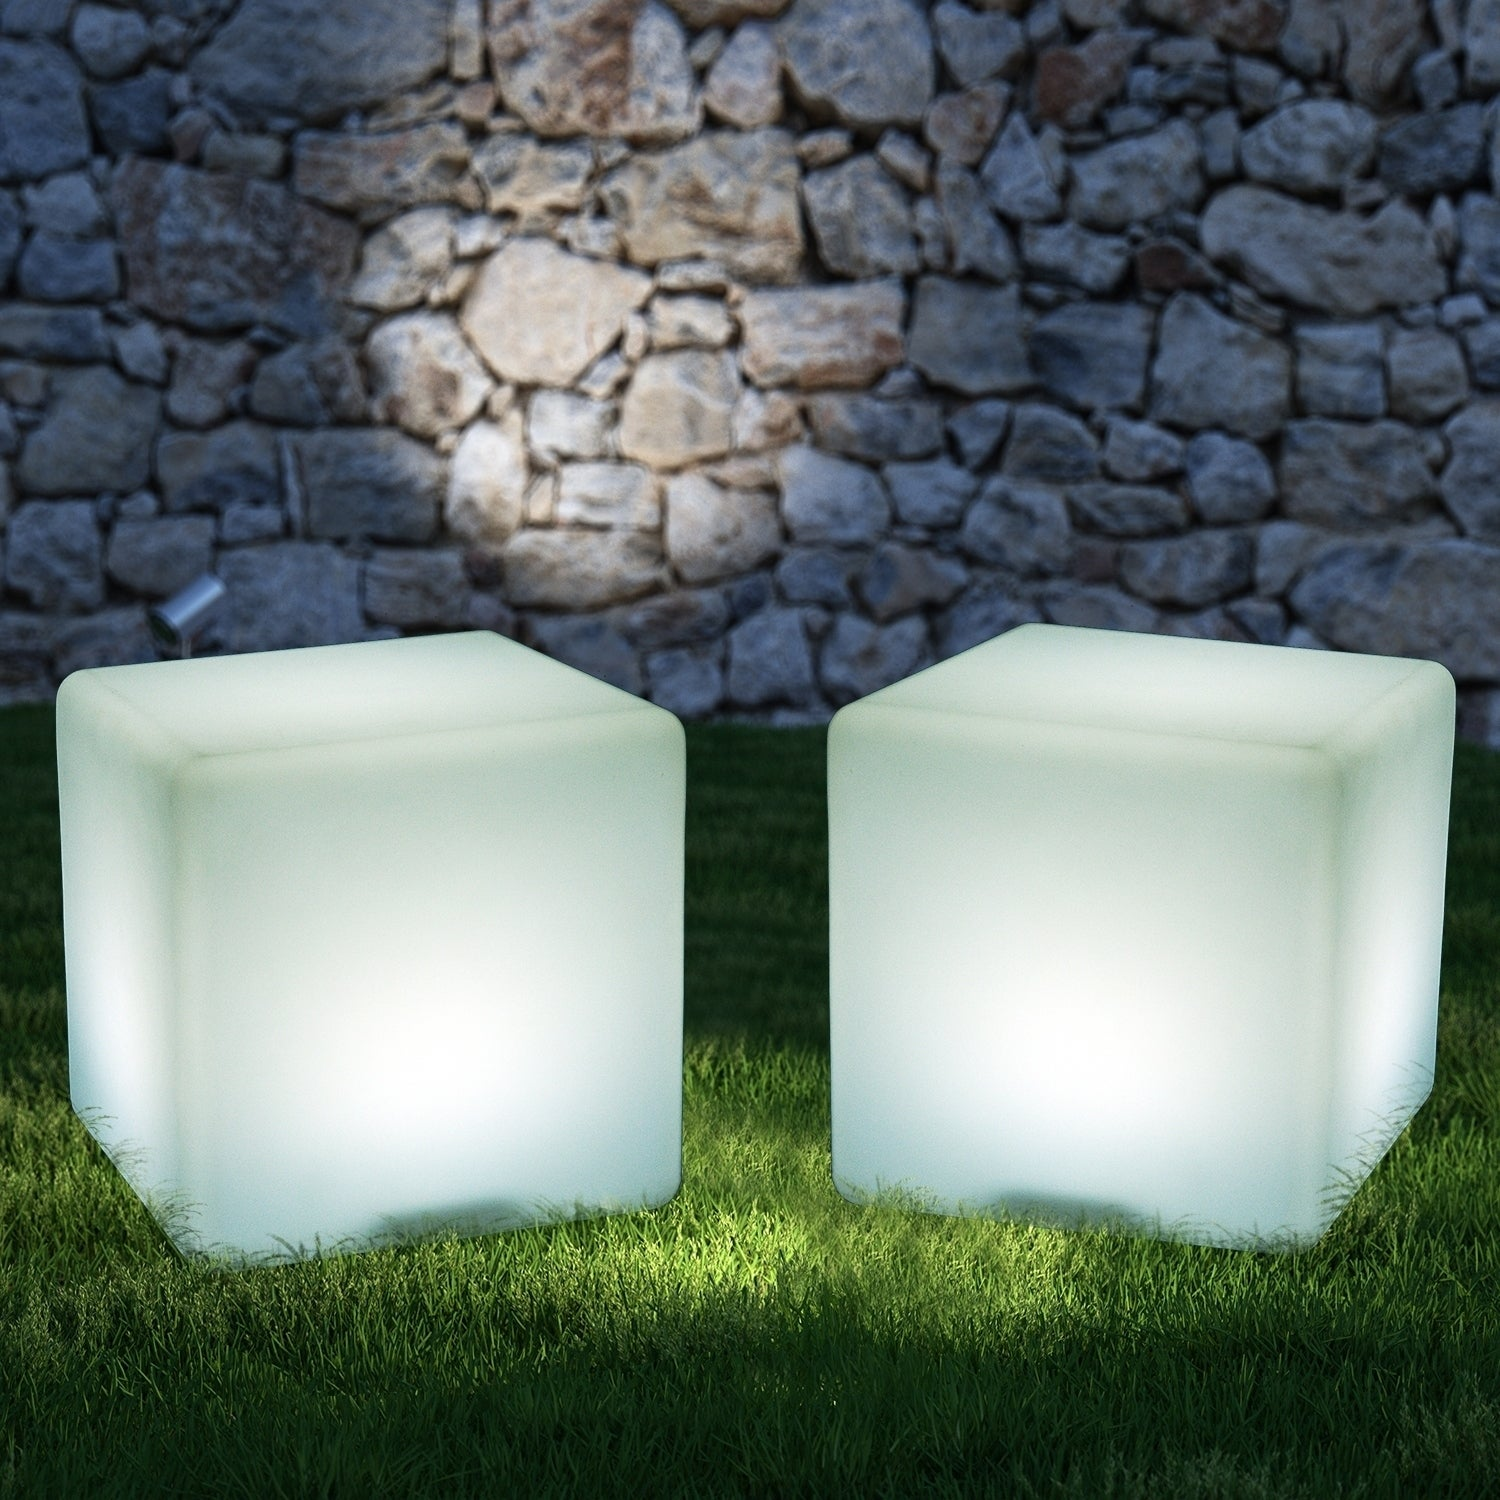 HomCom 16 RGB Adjustable Color Changing Cube Chair, Waterproof Rechargeable With Remote Control (As Is Item)